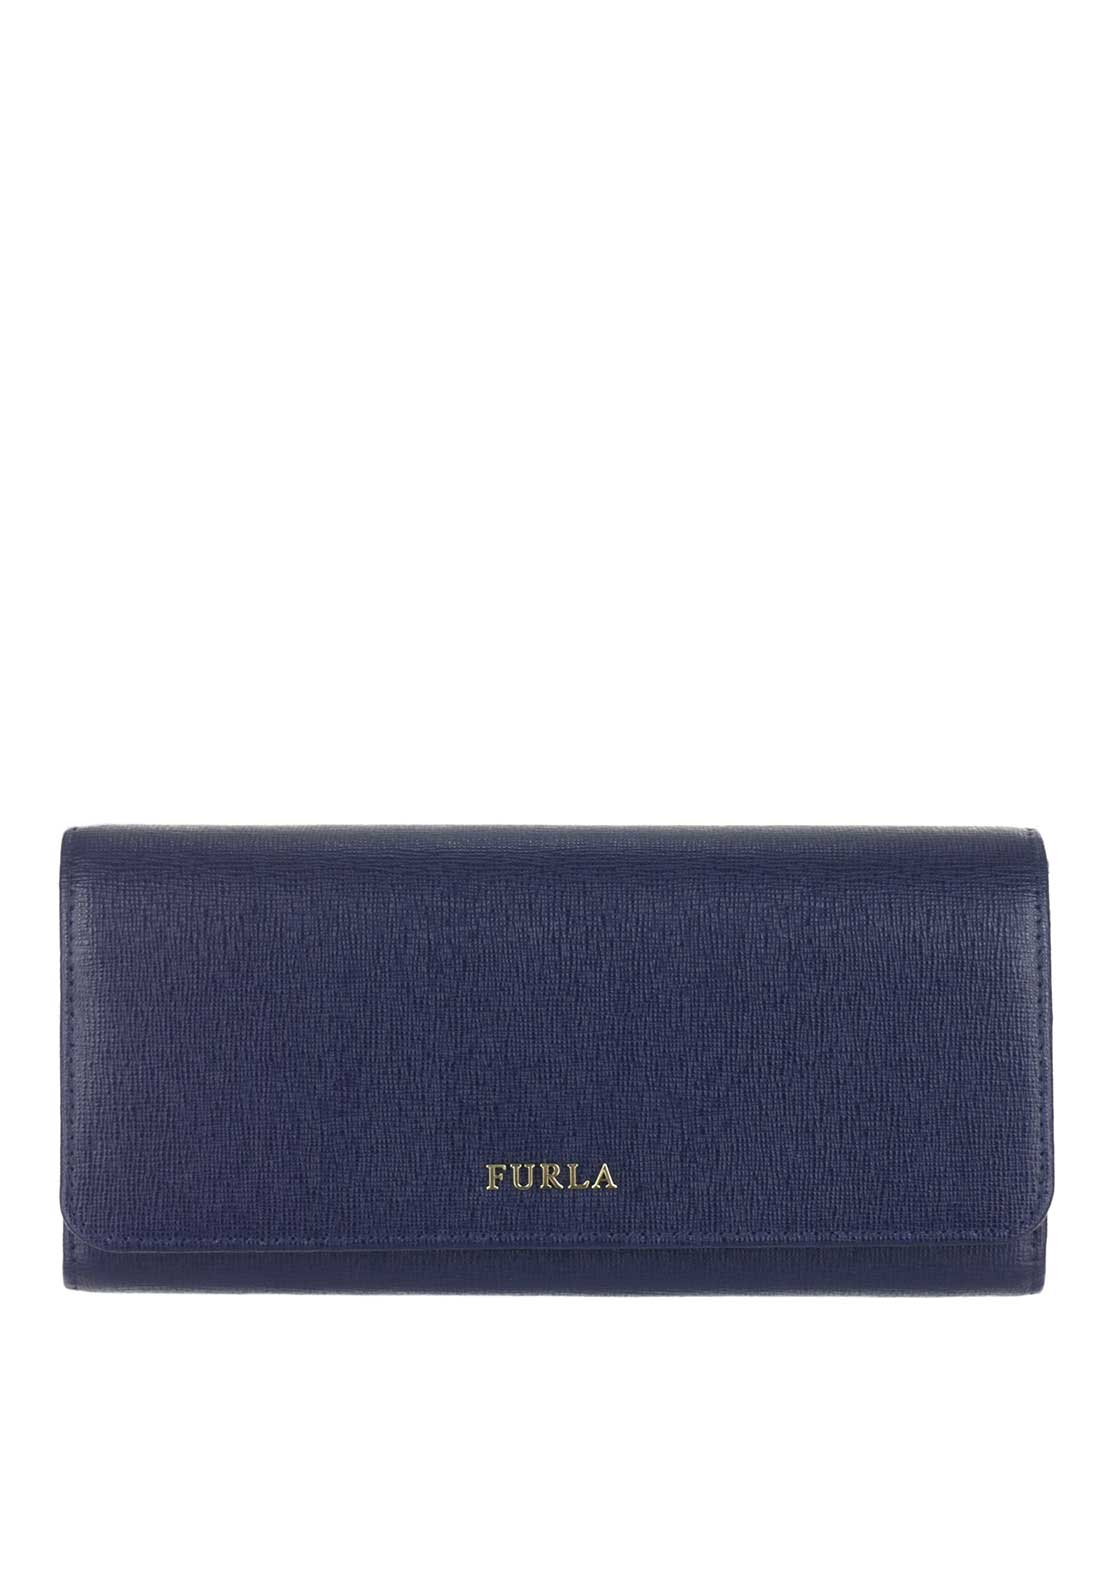 Furla Babylon Leather Drop Down Purse, Navy